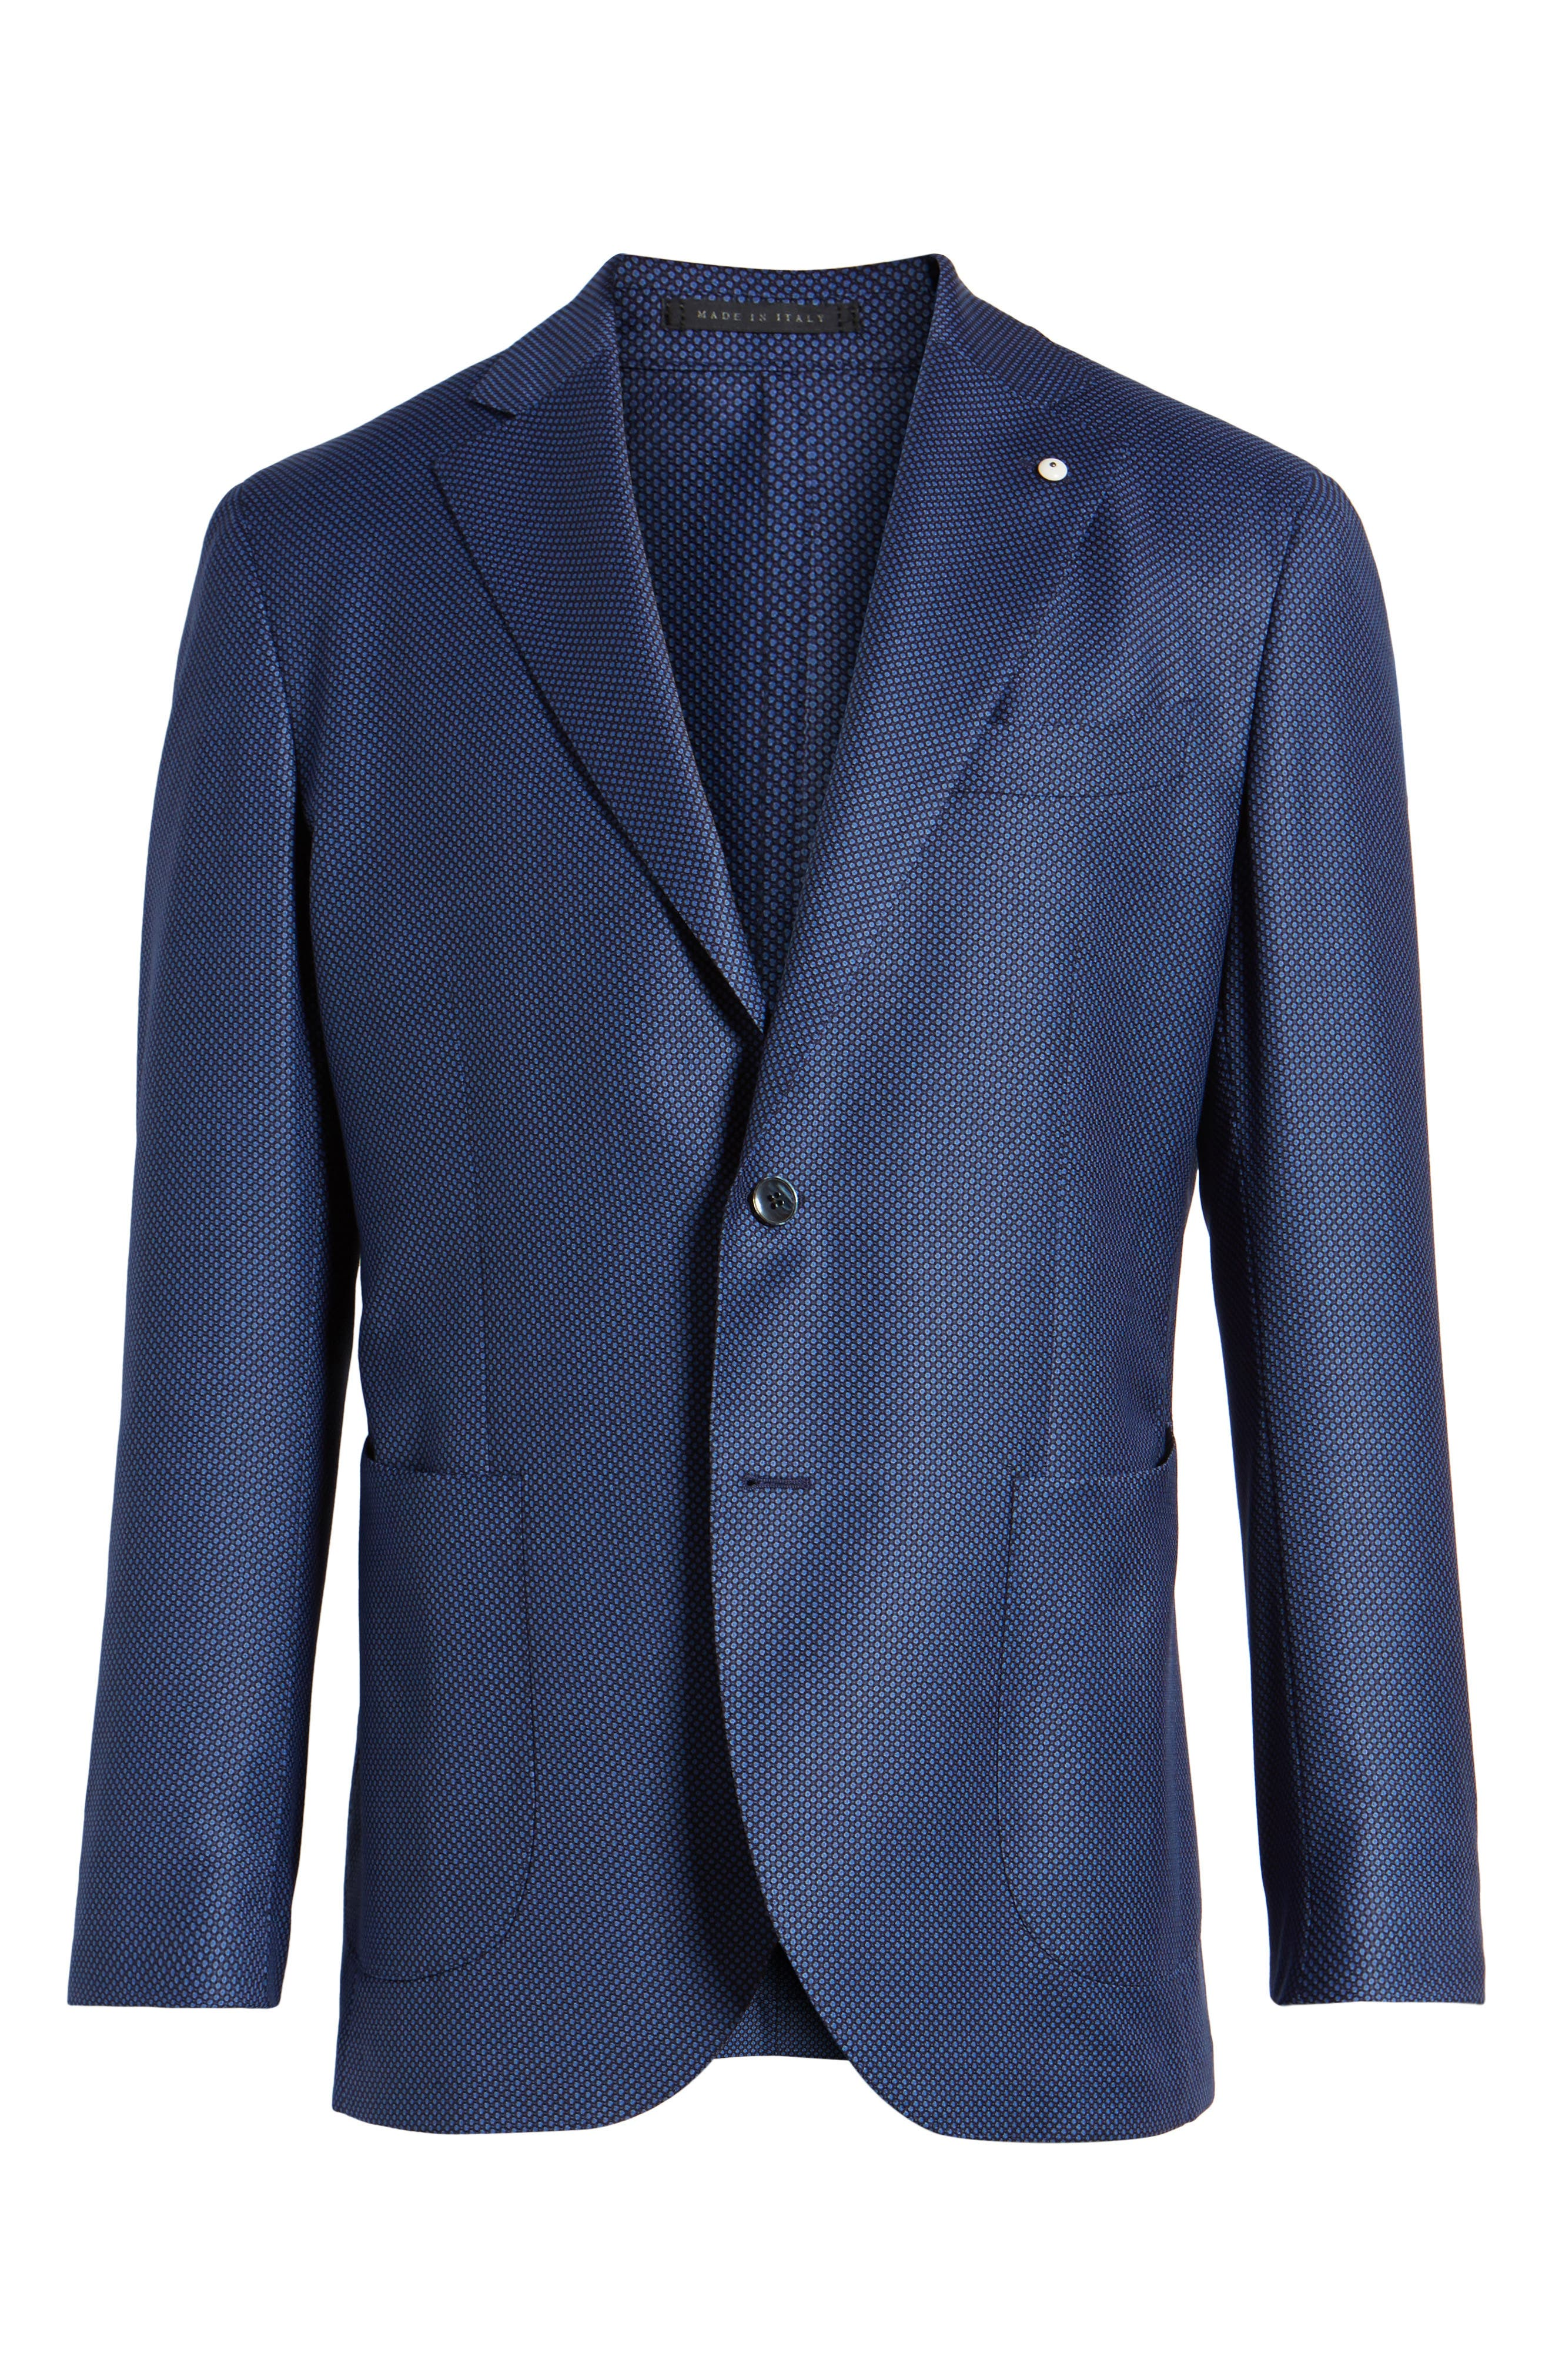 Classic Fit Wool Blazer,                             Alternate thumbnail 6, color,                             Navy